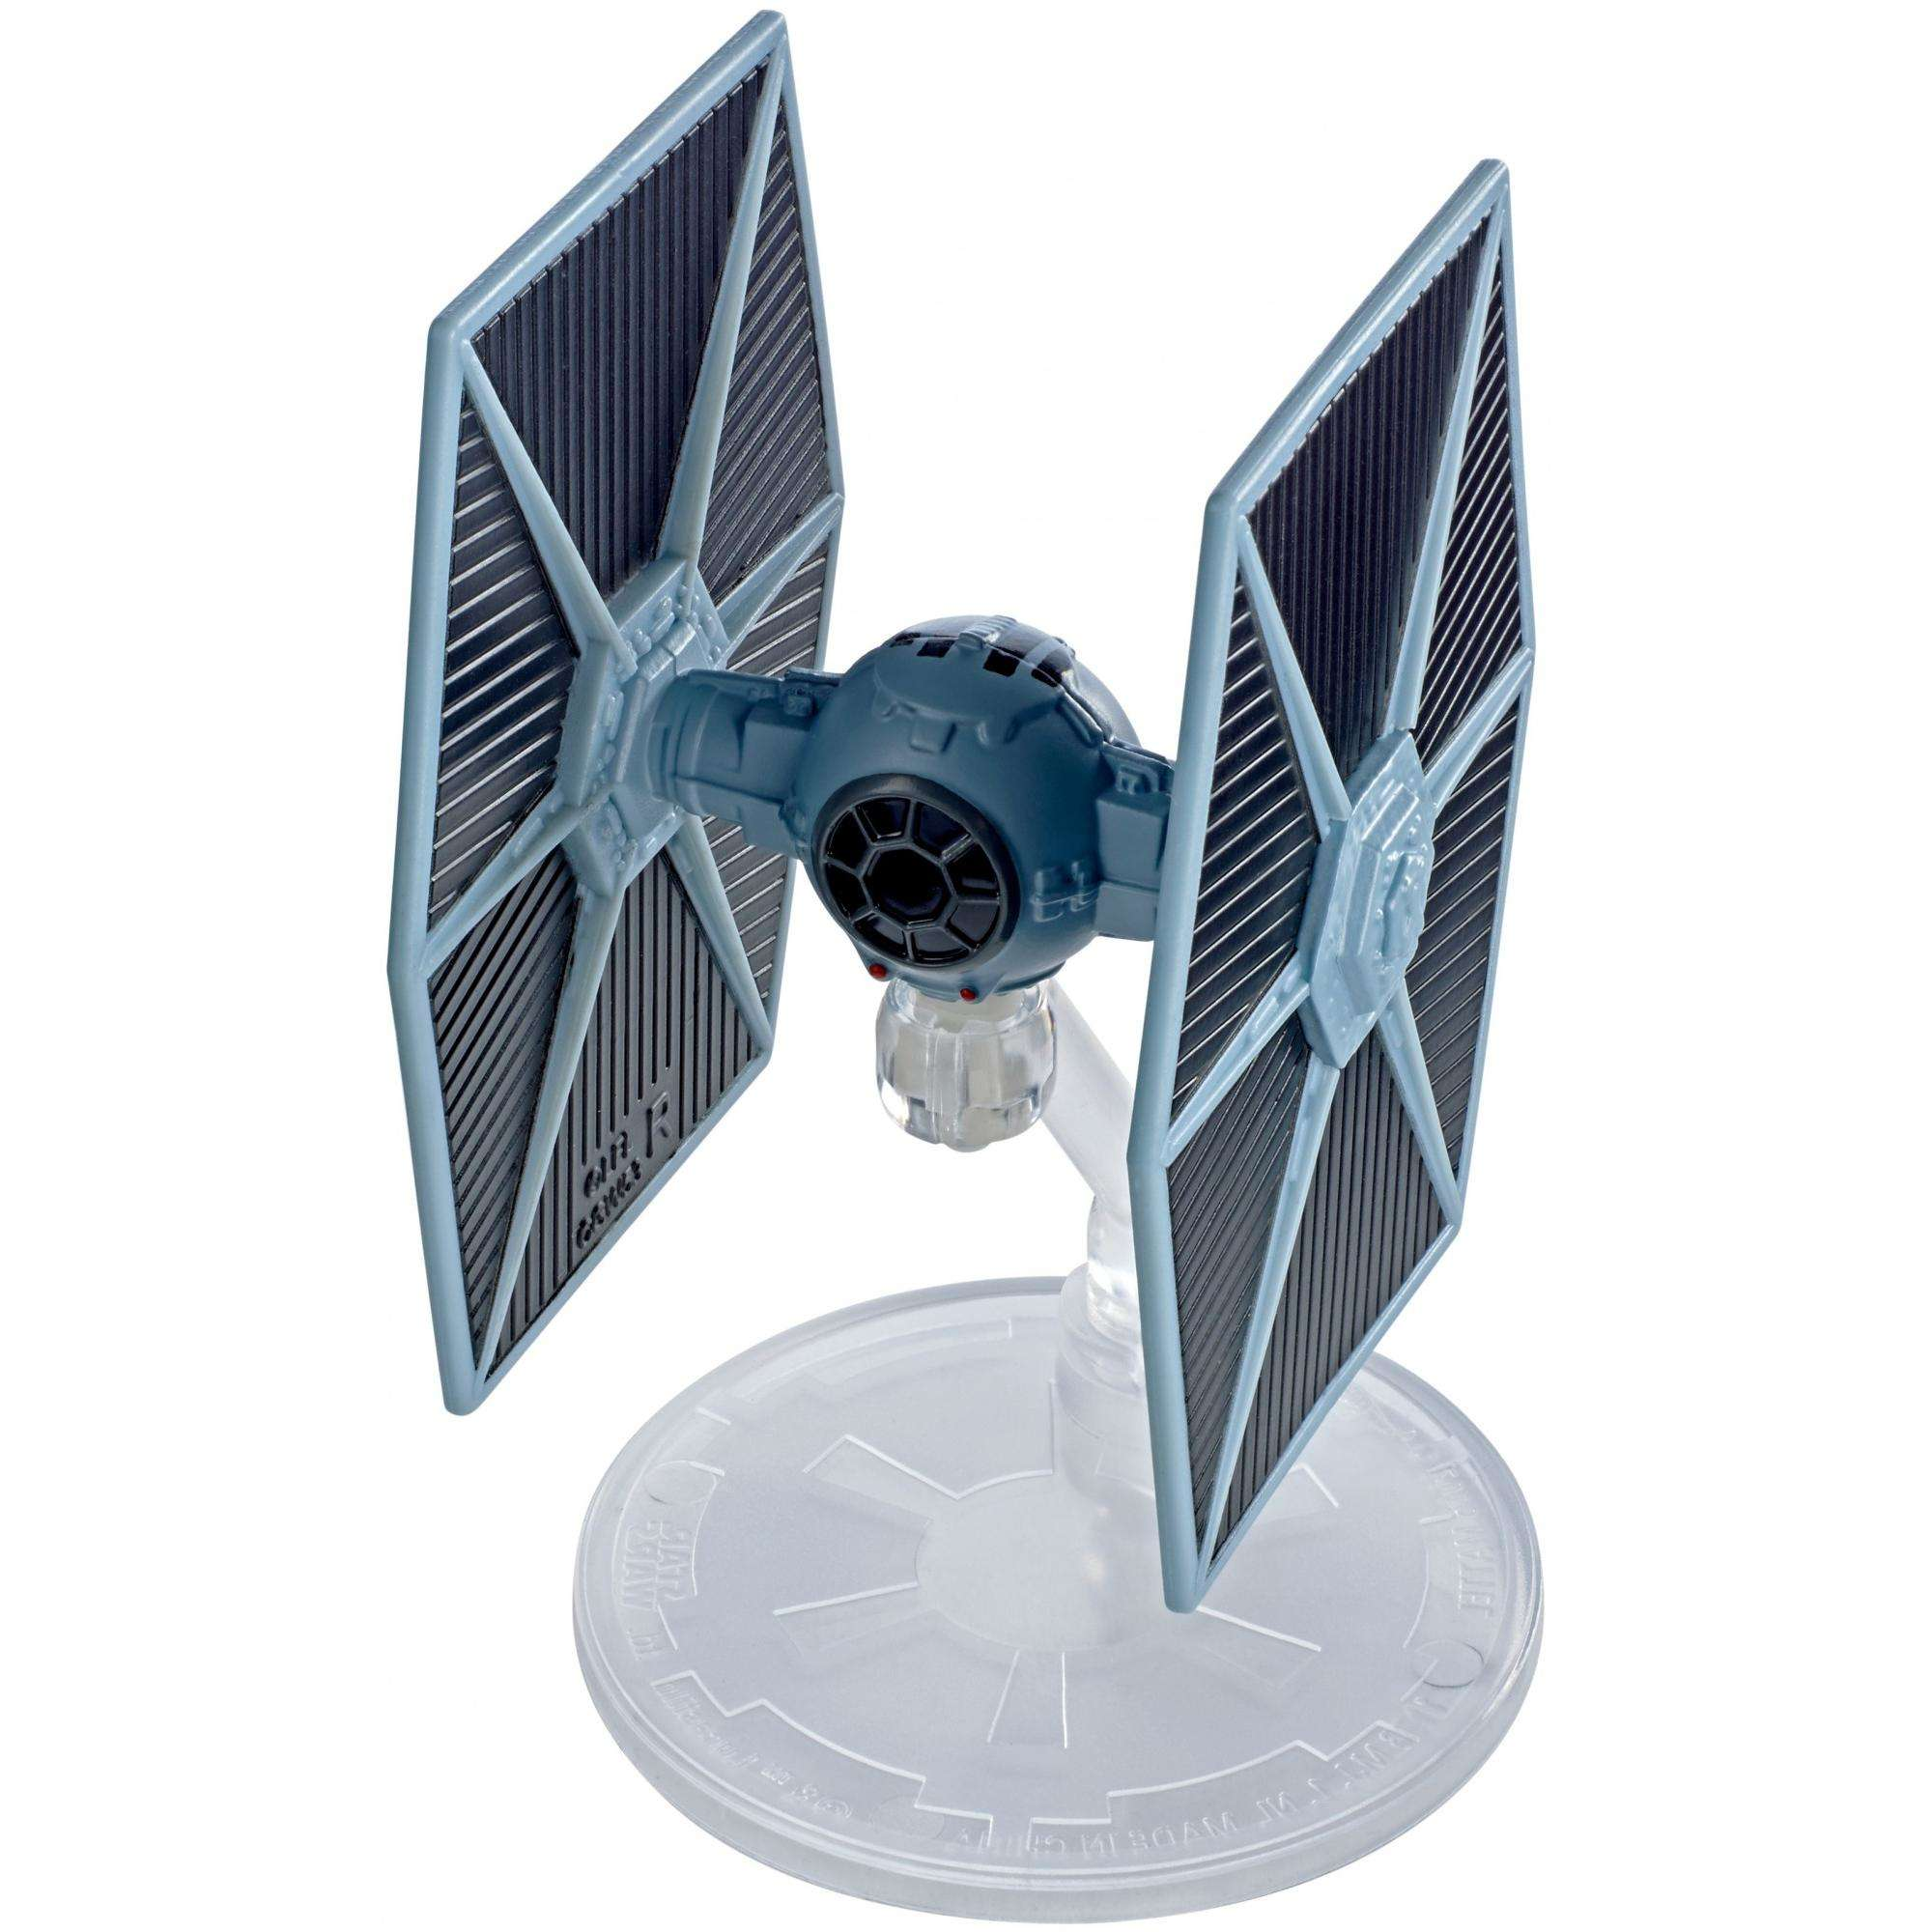 Hot Wheels Star Wars Starships Imperial TIE Fighter Vehicle